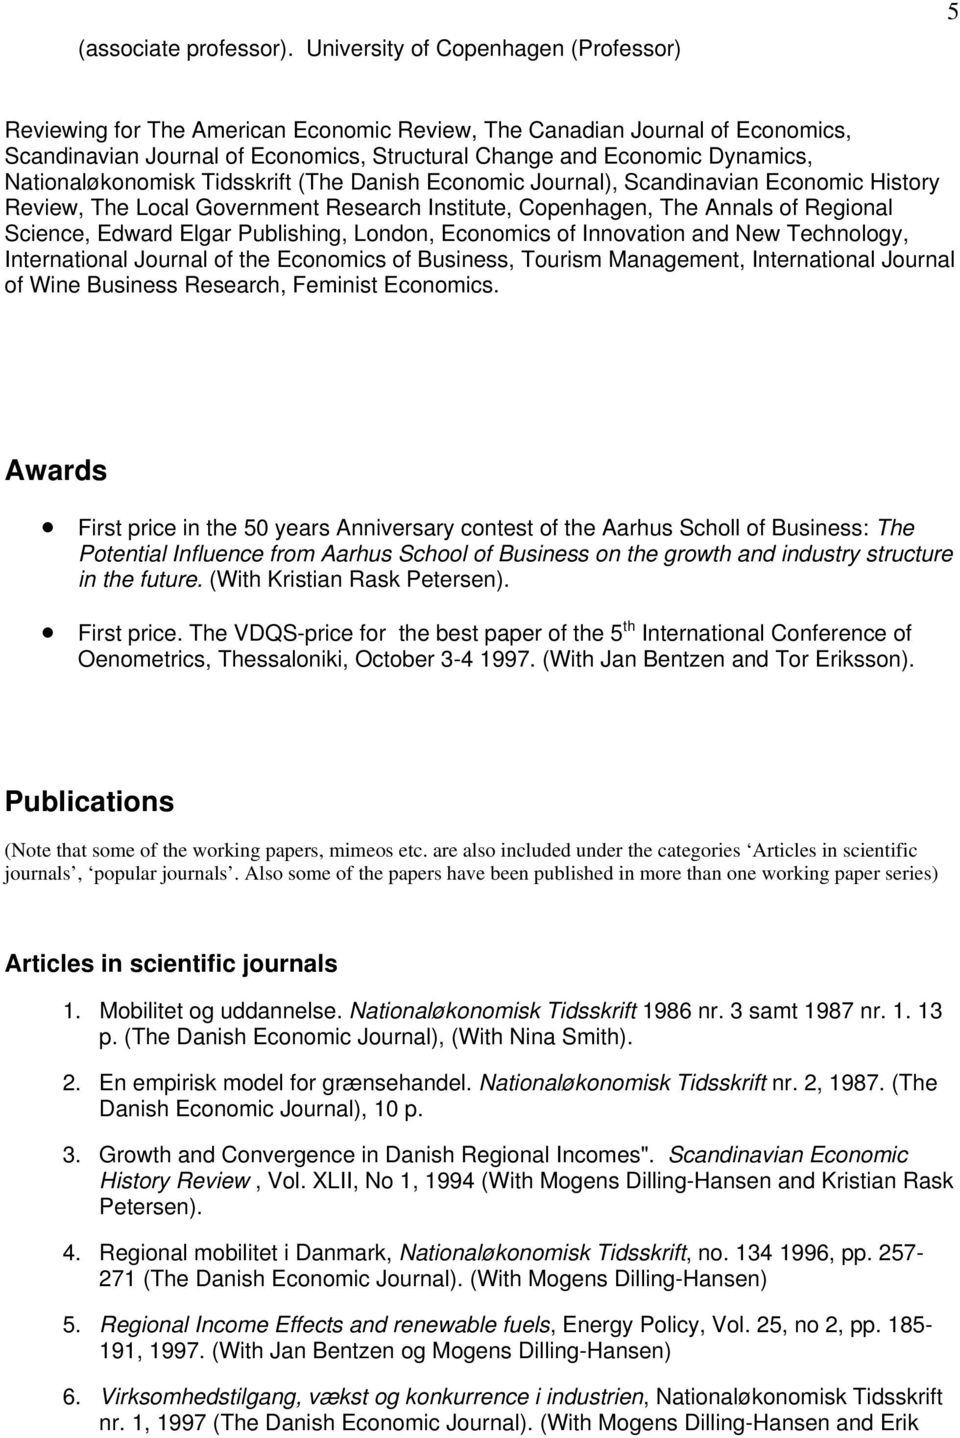 Nationaløkonomisk Tidsskrift (The Danish Economic Journal), Scandinavian Economic History Review, The Local Government Research Institute, Copenhagen, The Annals of Regional Science, Edward Elgar